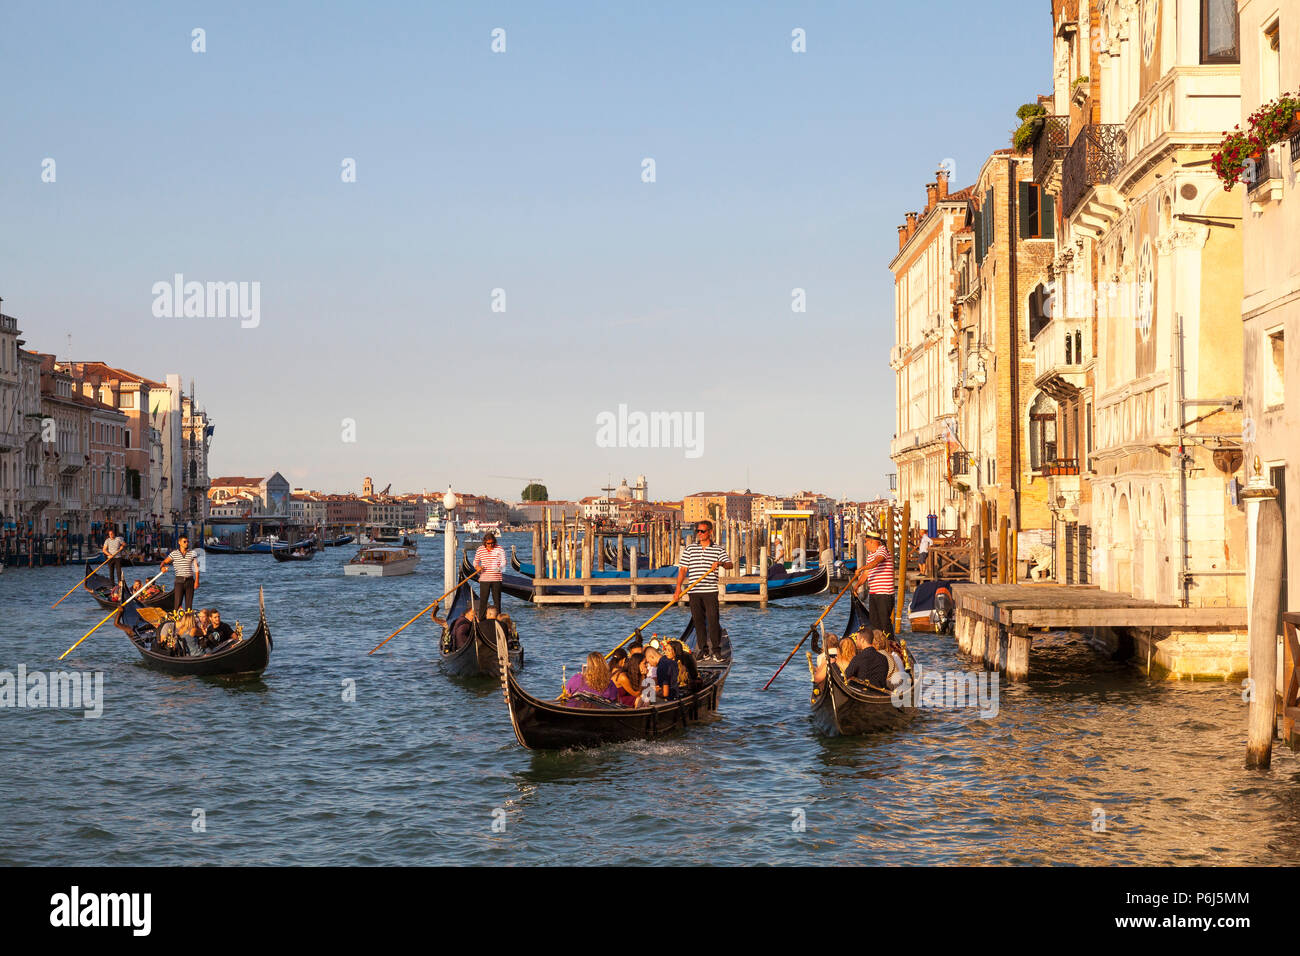 Tourists enjoying romantic  gondola rides at sunset on the Grand Canal, Venice, Veneto, Italy. Golden hour with reflections. - Stock Image